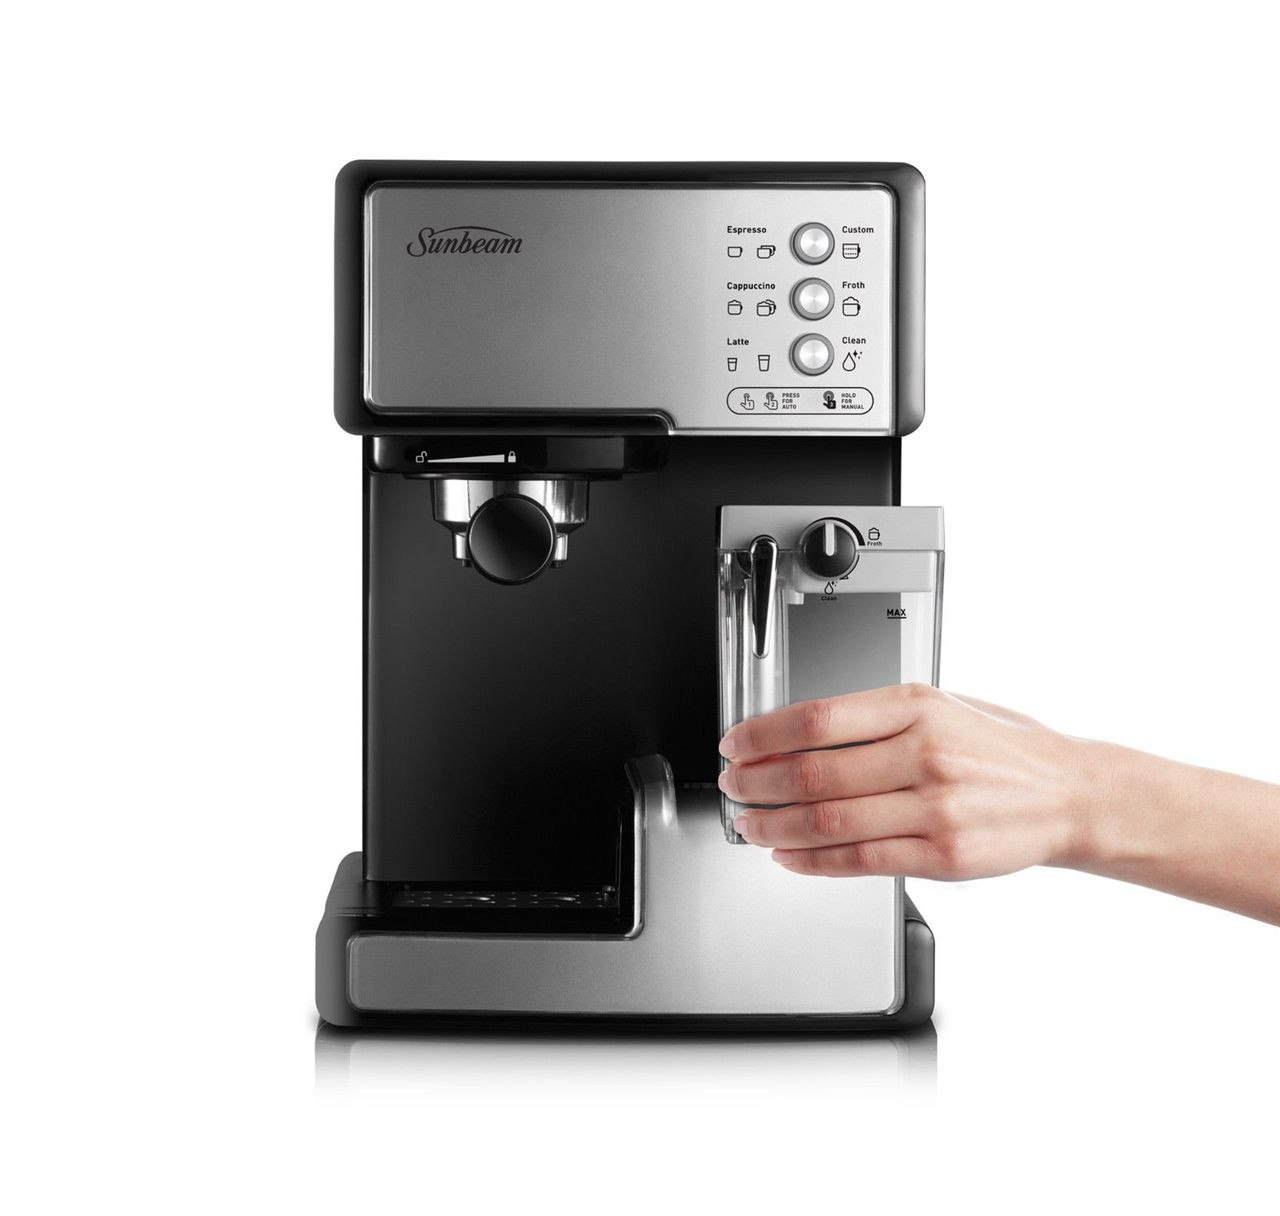 Sunbeam EM5000 Café Barista Manual Coffee & Automated Milk Machine